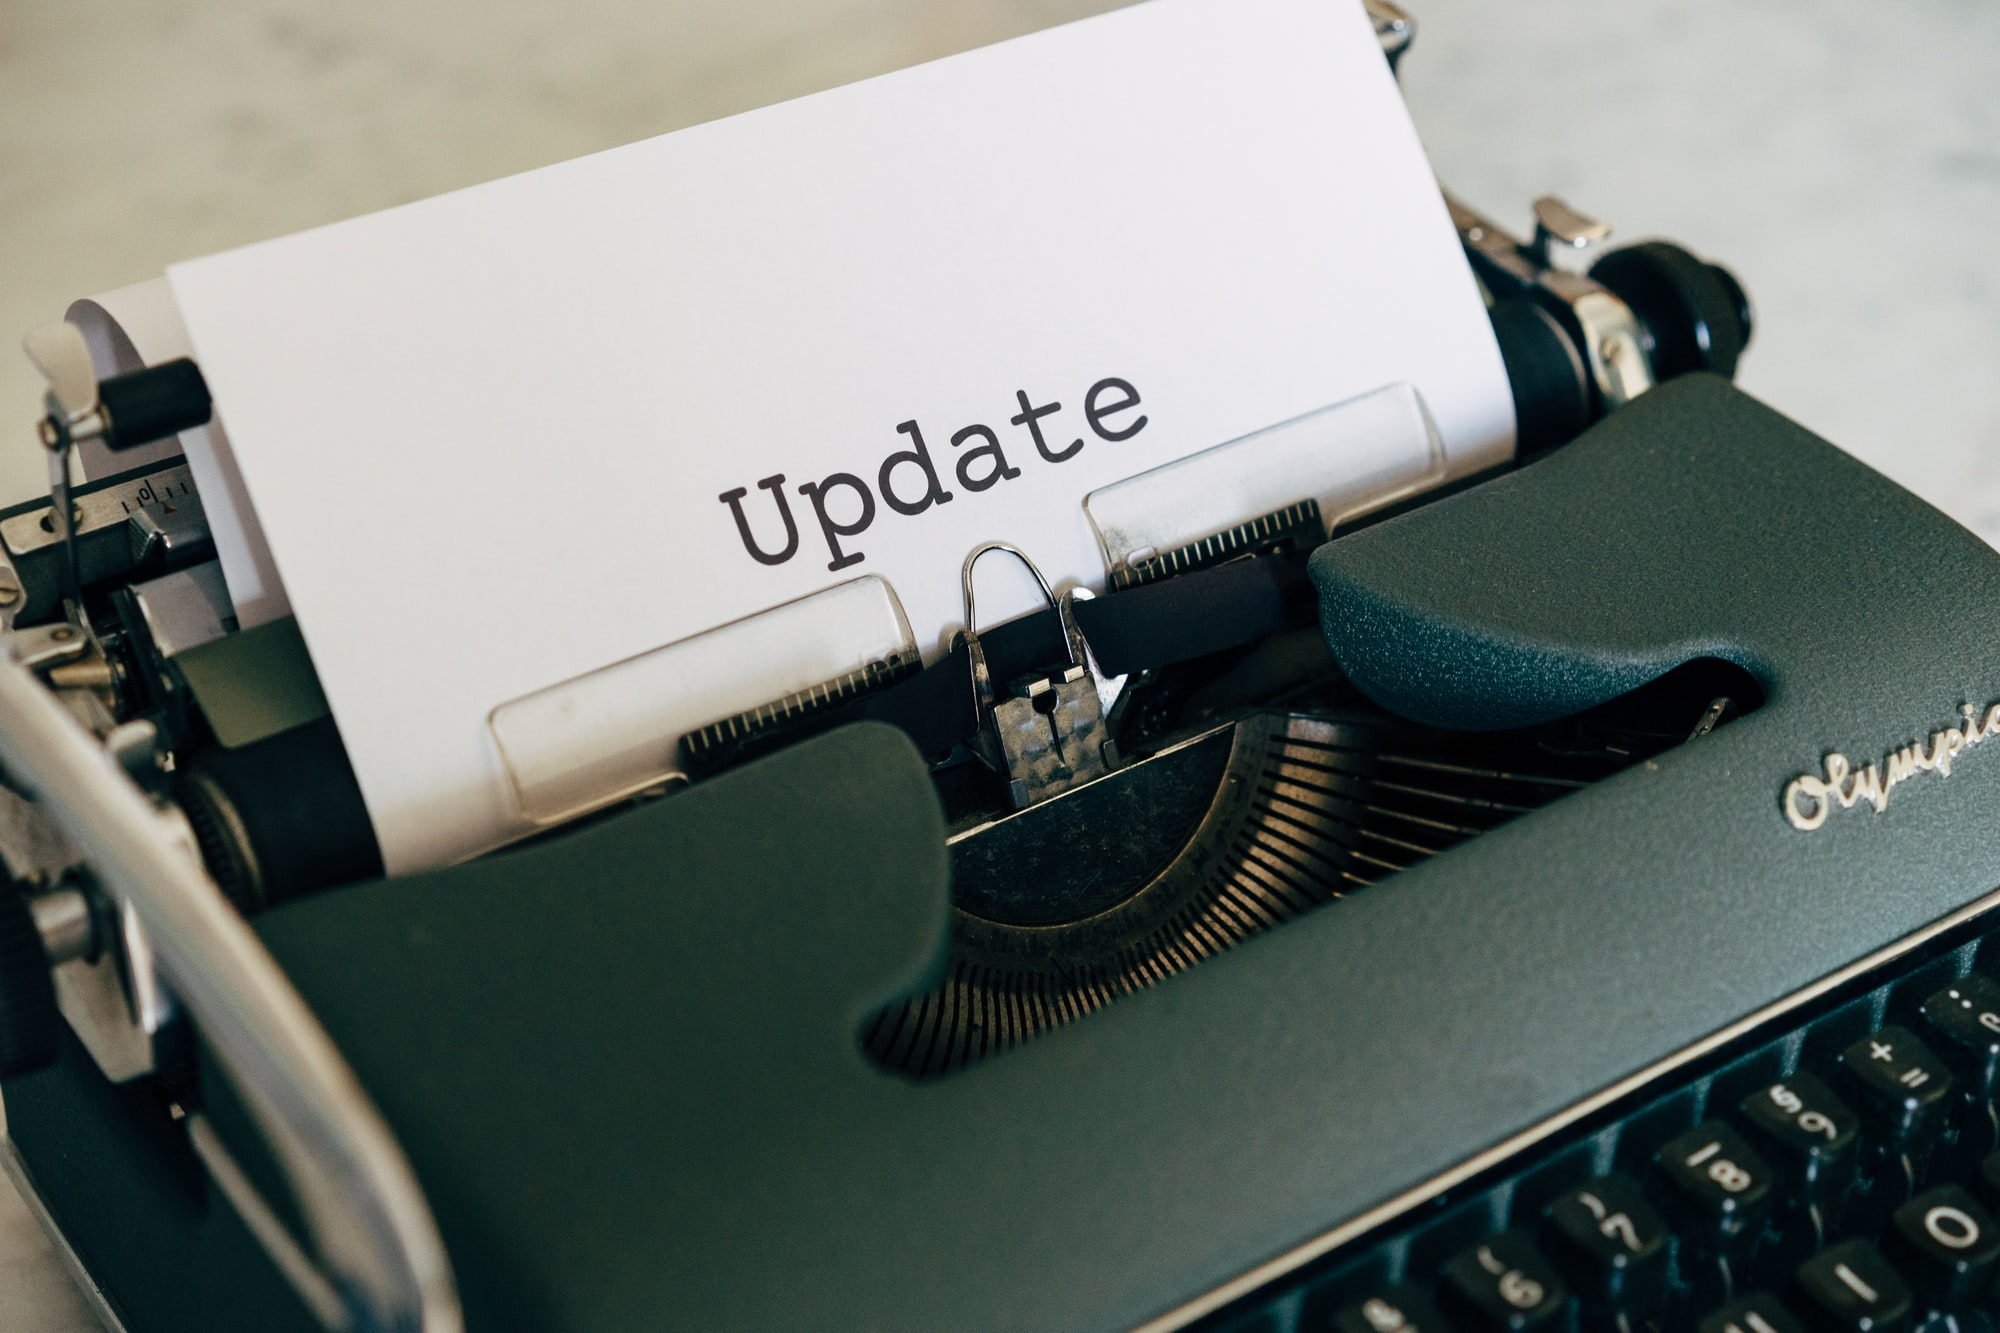 A typewriter with a sheet of paper that says the word 'Update'